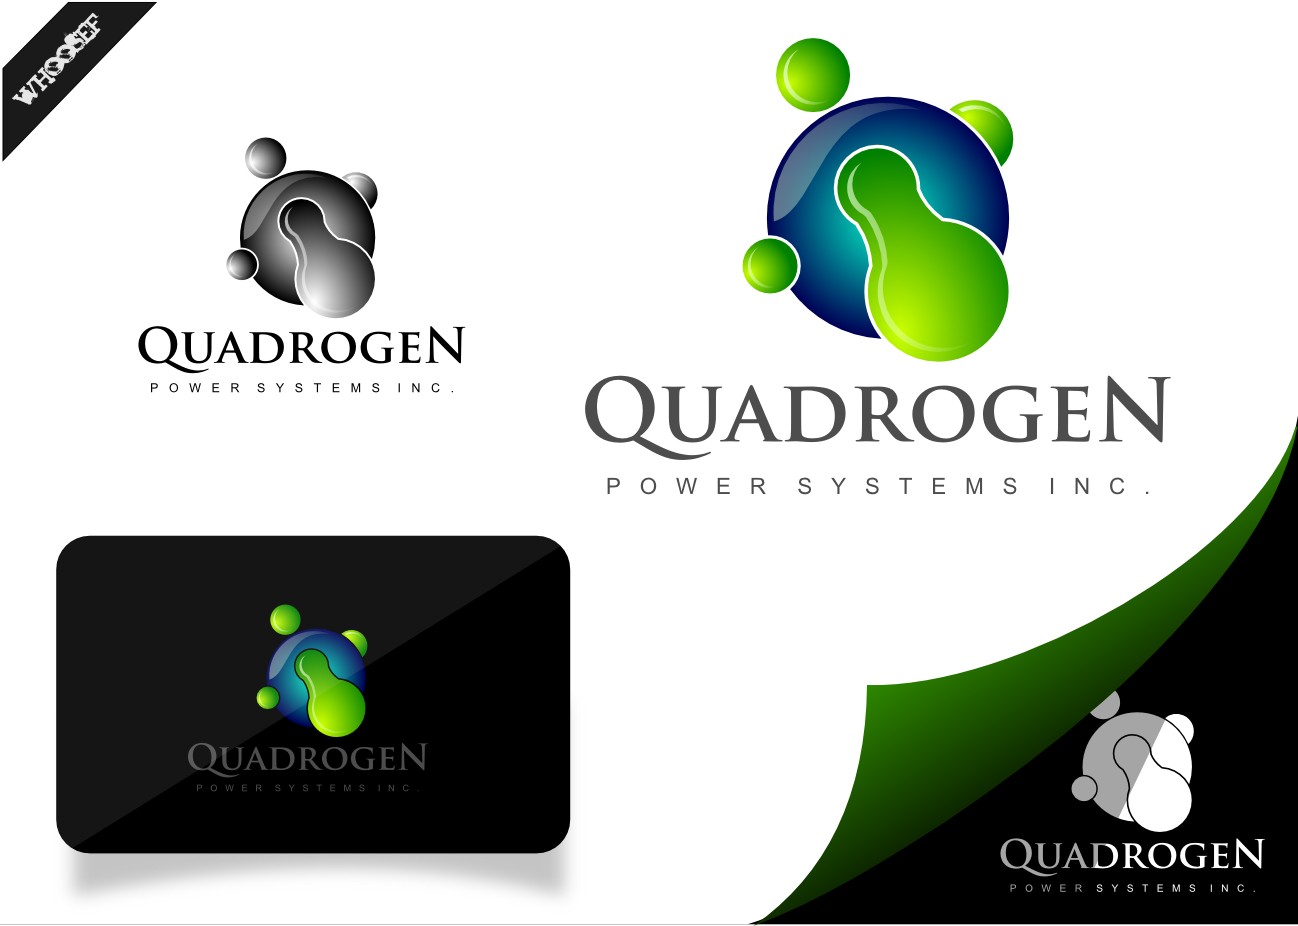 Logo Design by whoosef - Entry No. 110 in the Logo Design Contest New Logo Design for Quadrogen Power Systems, Inc.